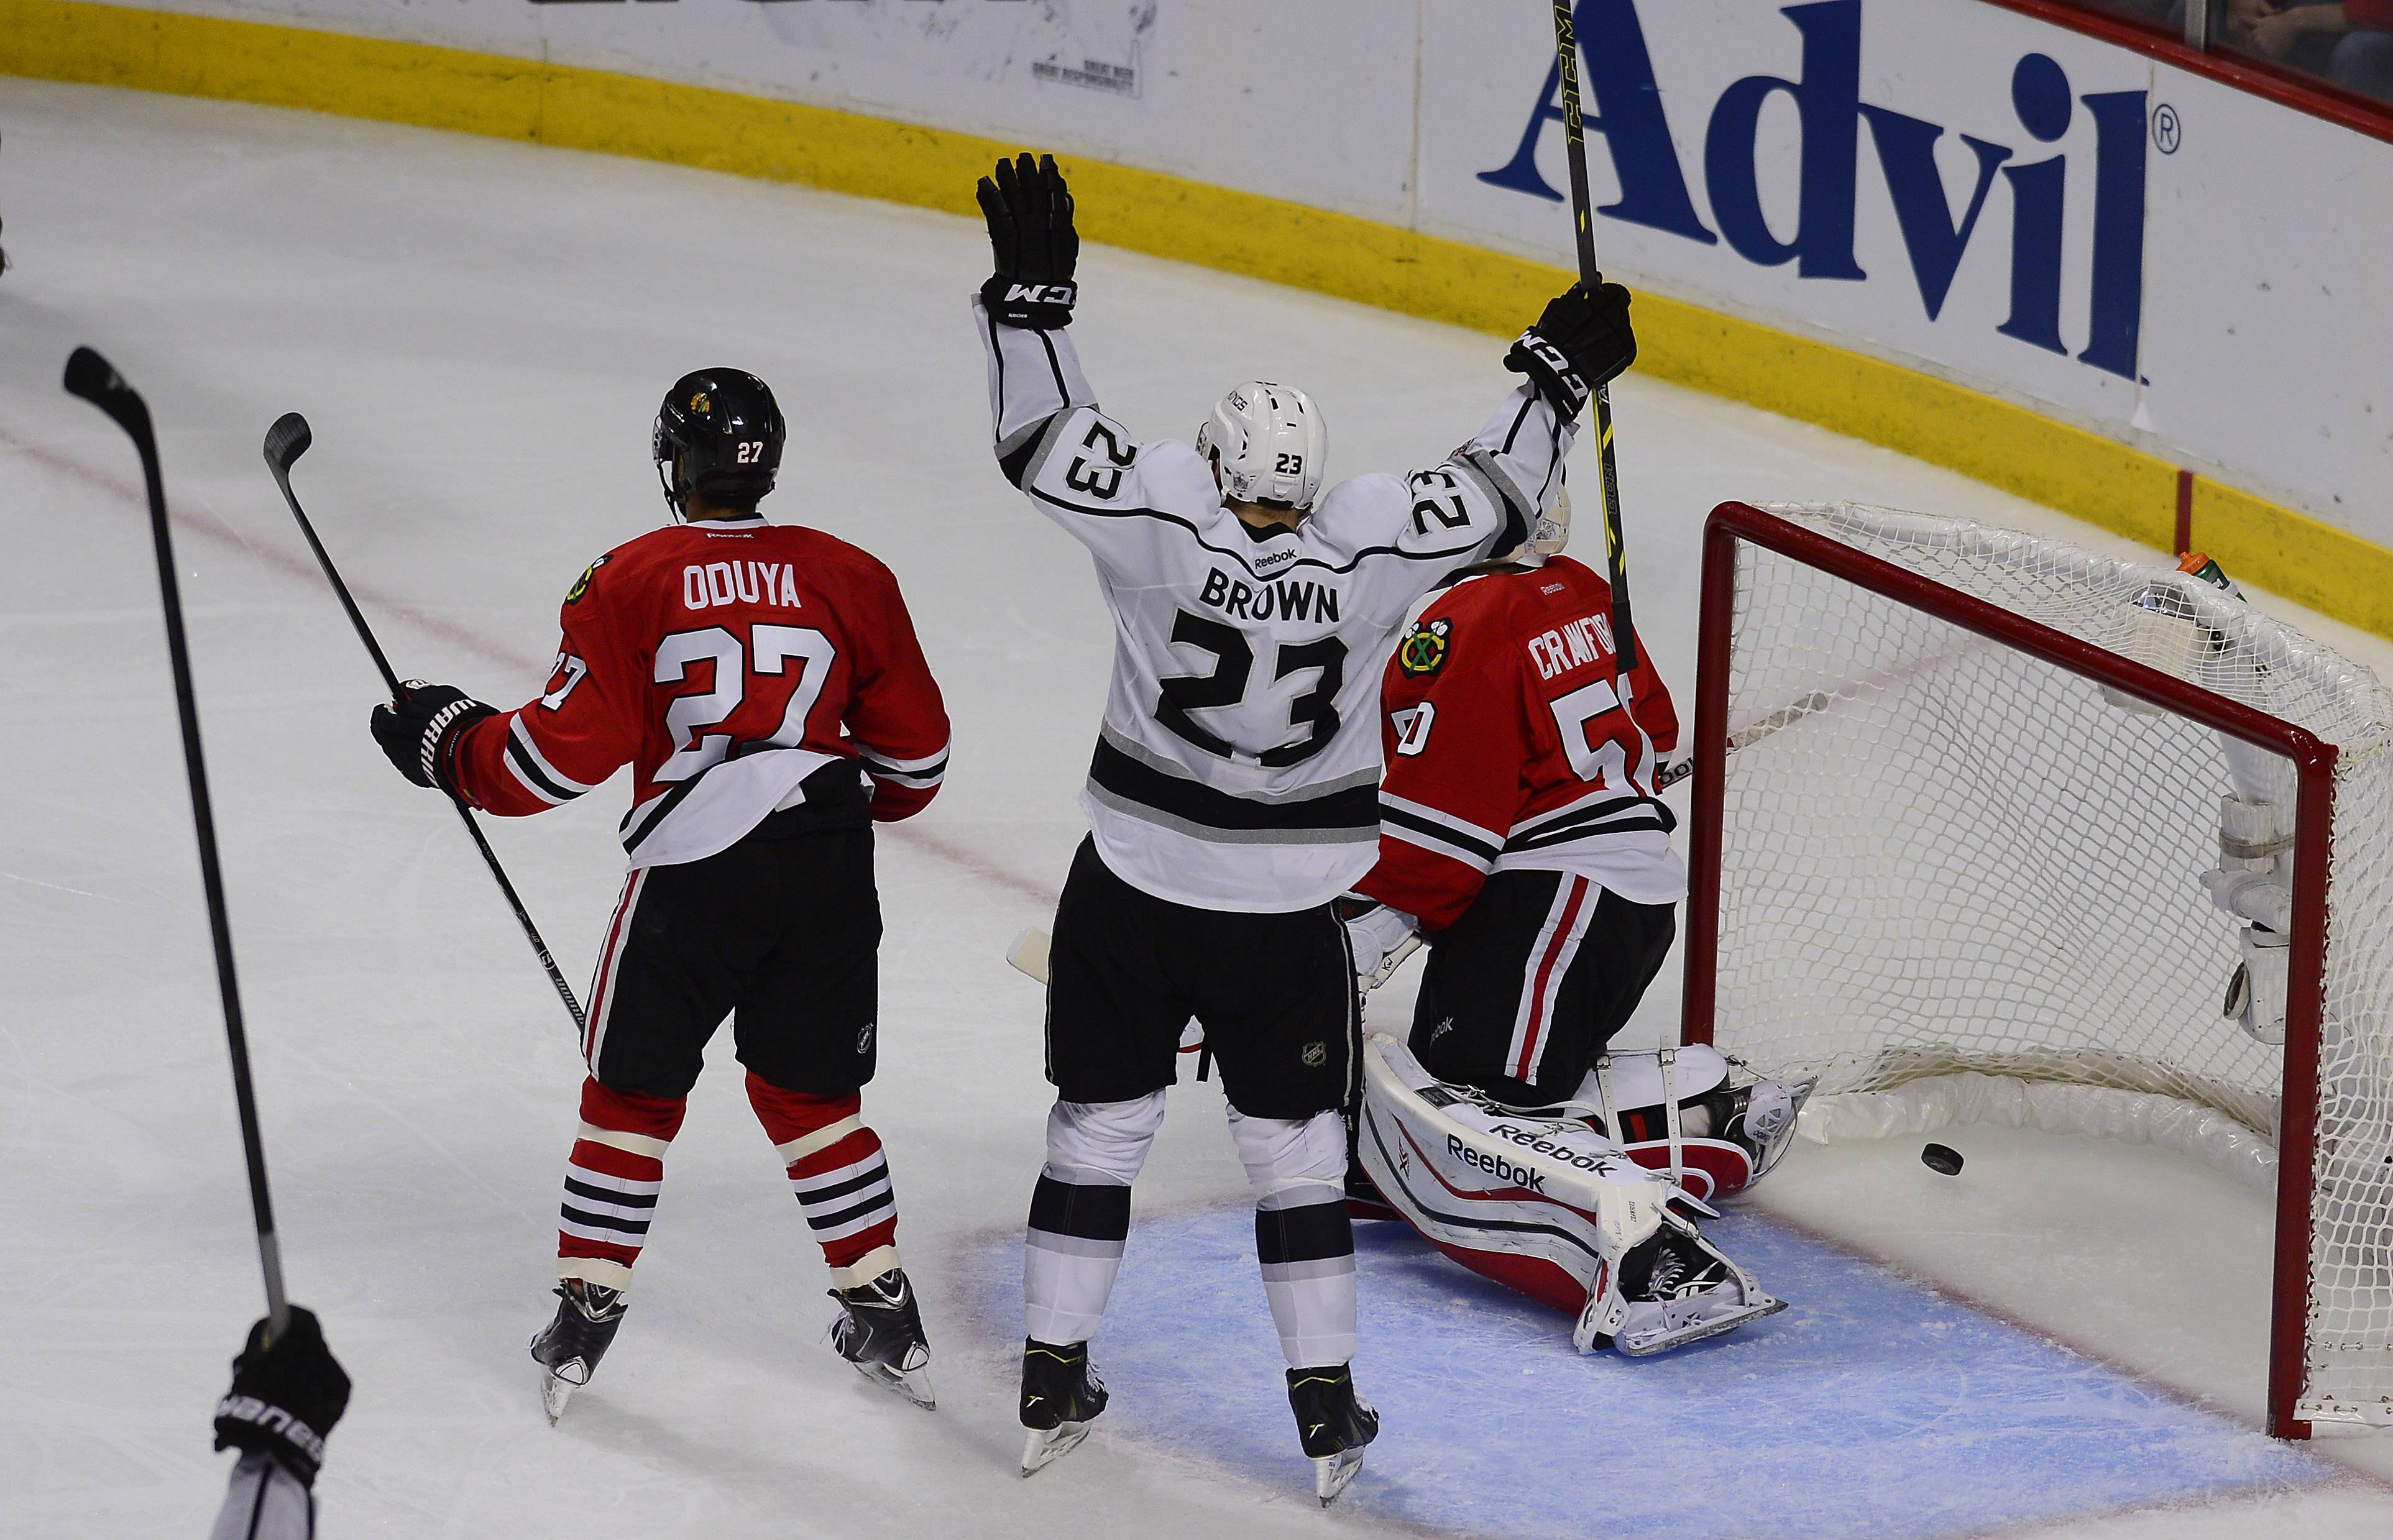 The Los Angeles Kings' Dustin Brown signals goal after his teammate Jake Muzzin scores for the go-ahead goal against the Blackhawks in the third period last night. It was one of many Kings goals to come.